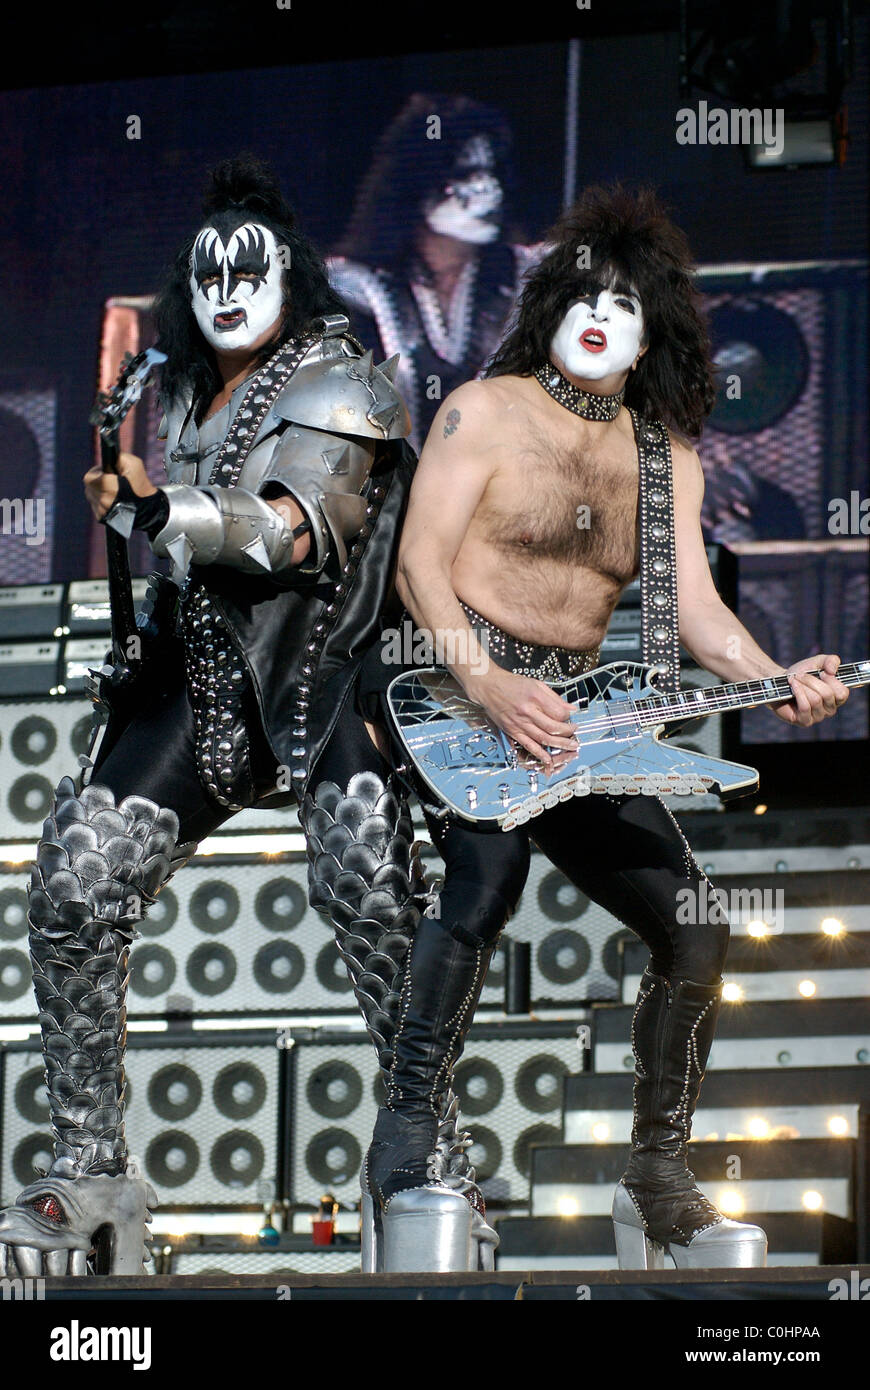 Gene Simmons and Paul Stanley of Kiss Performing Live Download Stock